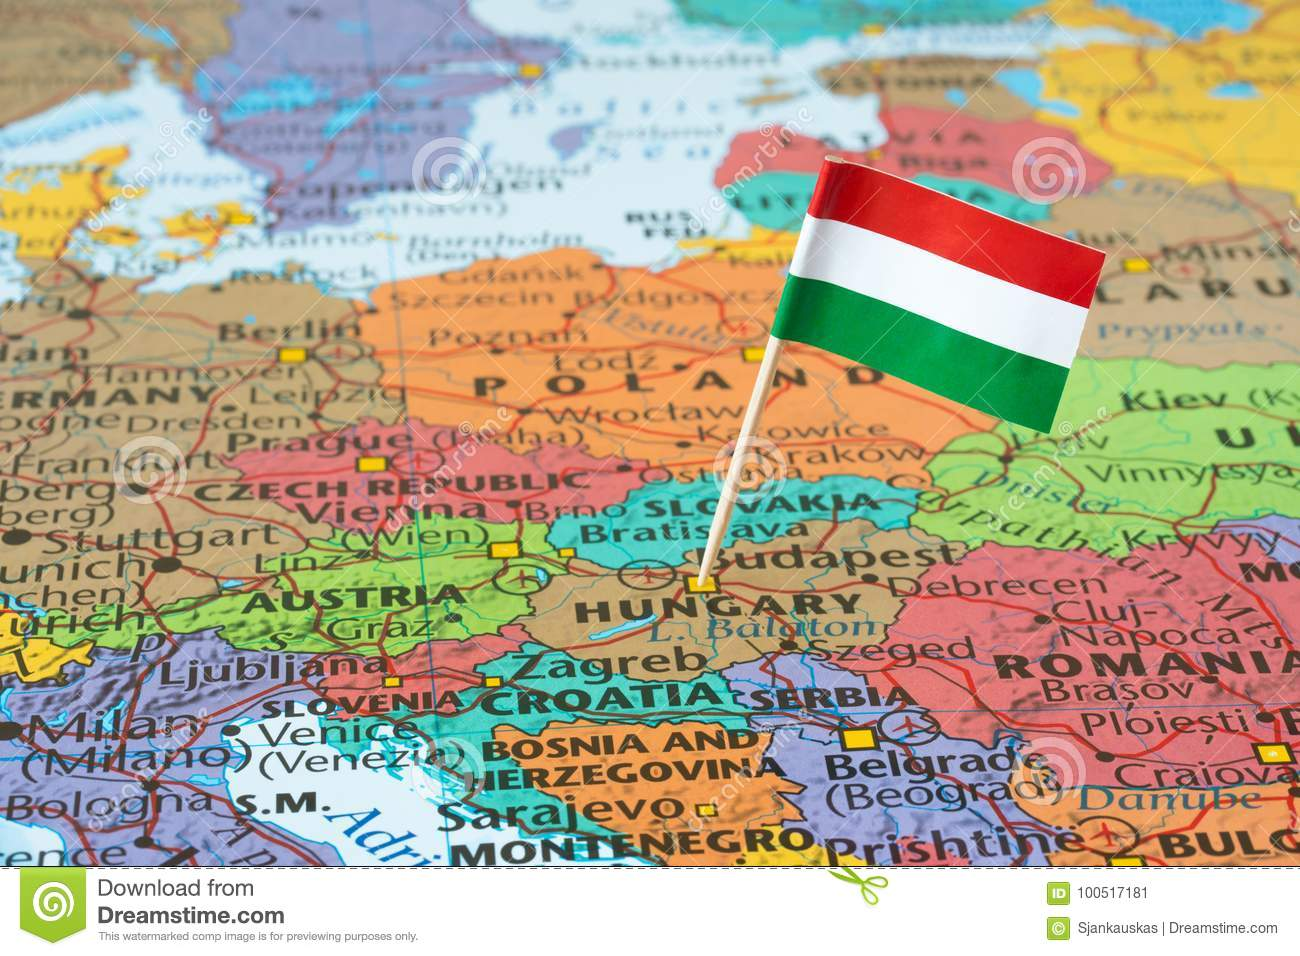 Hungary Map Stock Photos Royalty Free Pictures - Hungary map